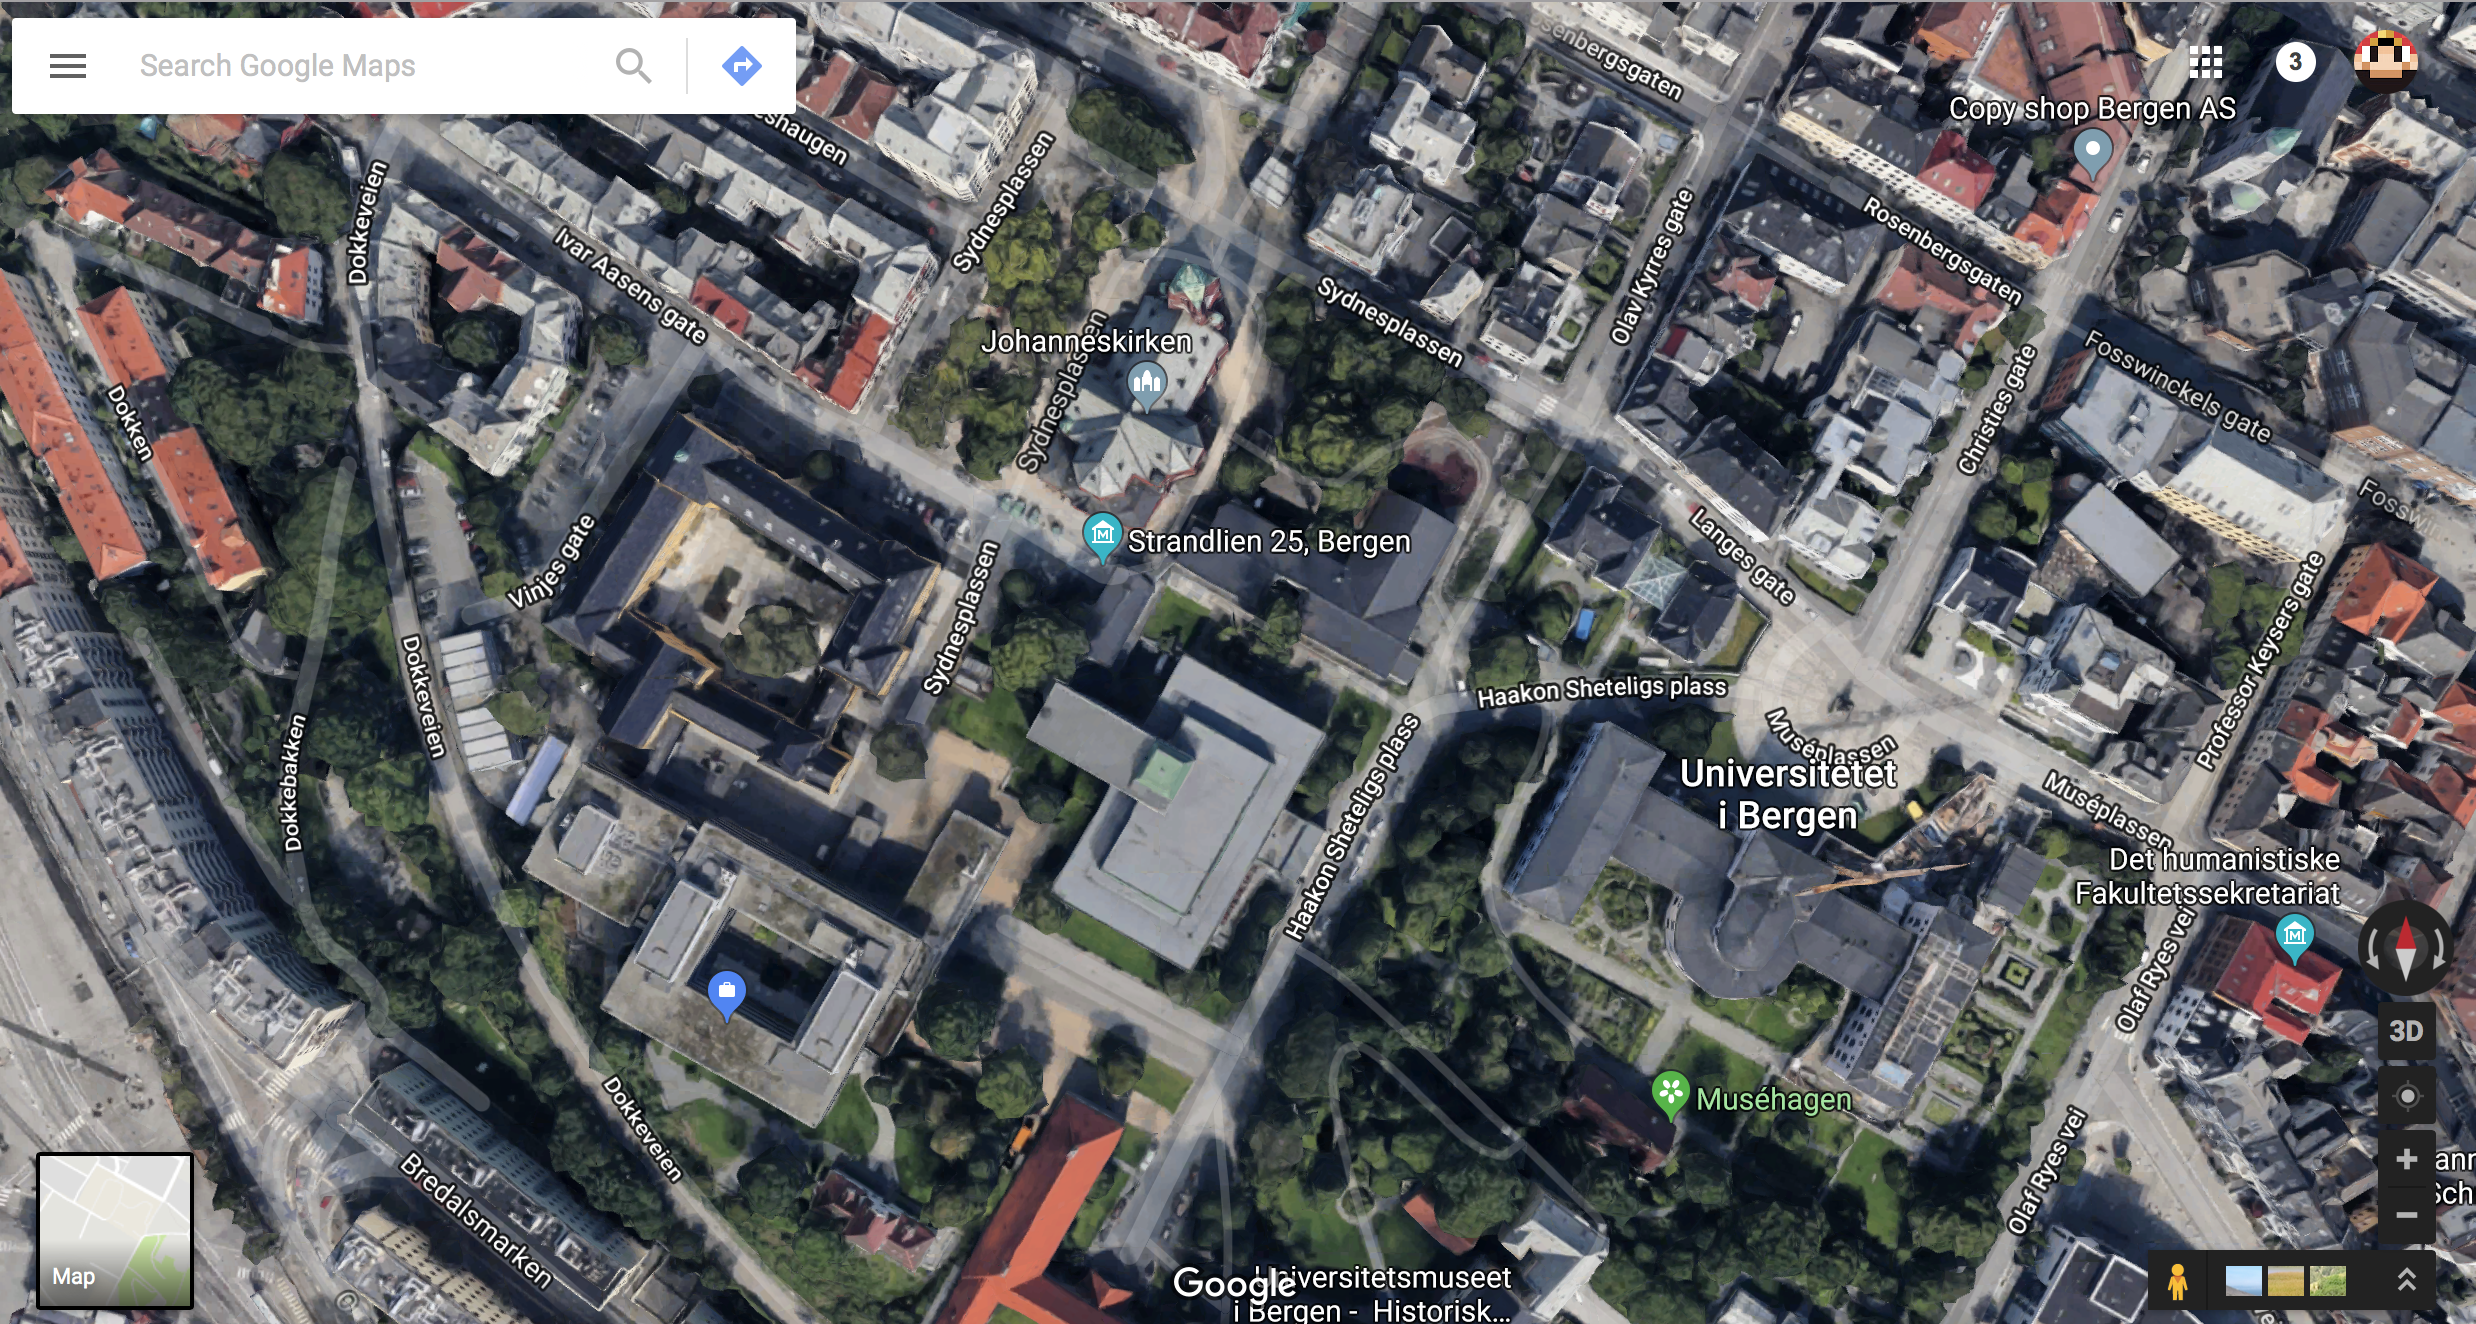 Section of a satellite map image of part of the city of Bergen, showing streets, trees, buildings, parked cars.